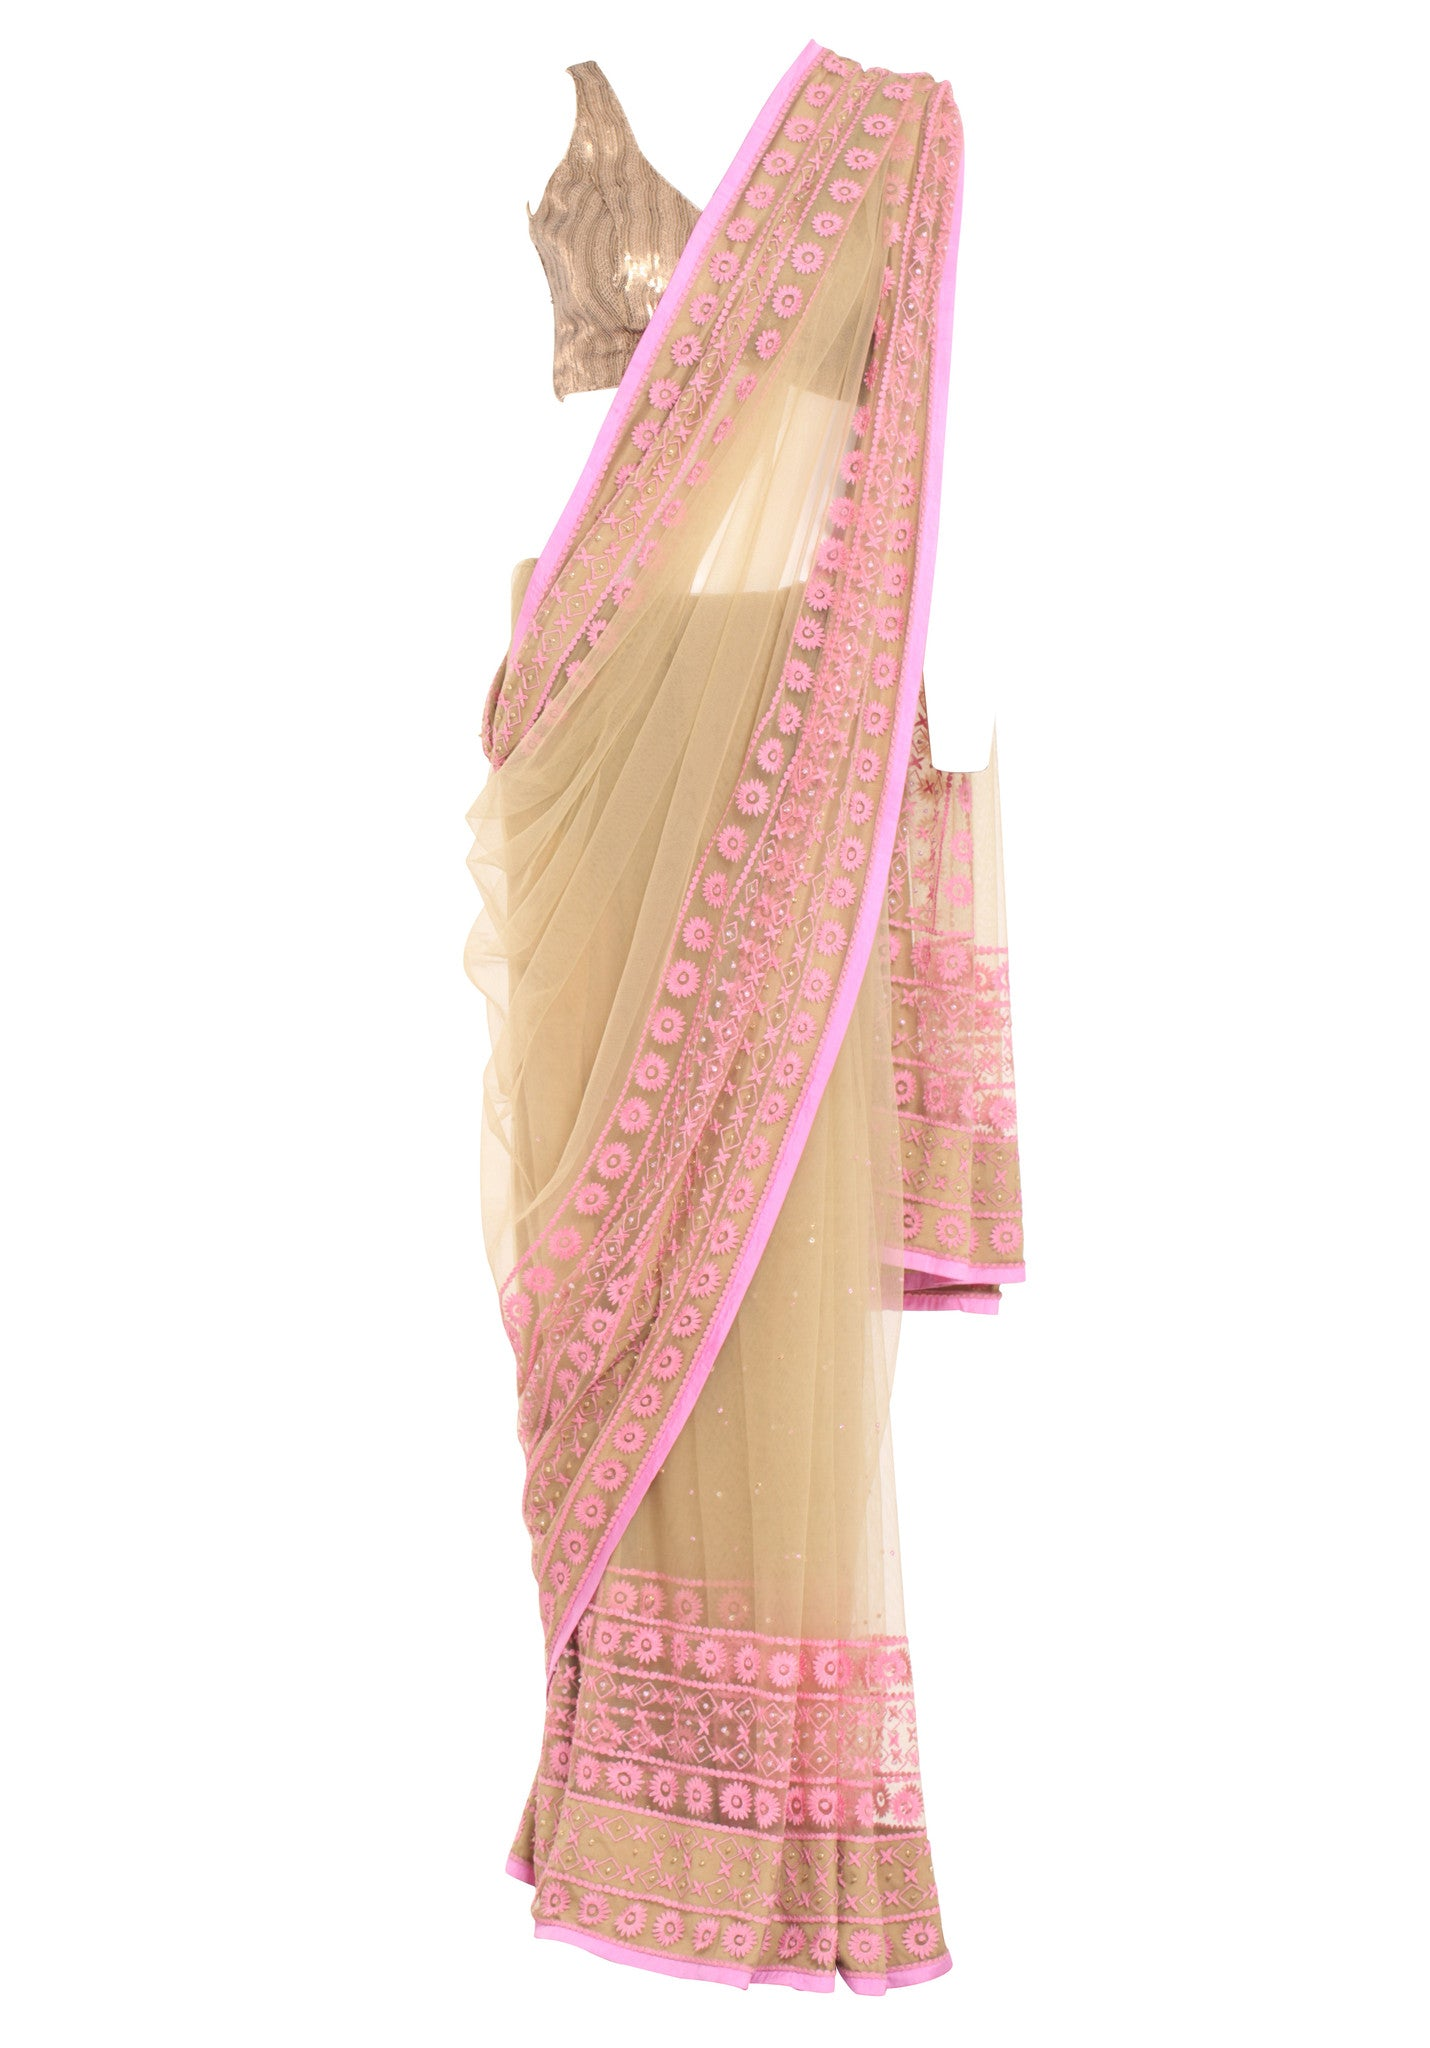 Shehla Khan Khaki Beige Tulle Saree Baby Pink Border Mannequin Front